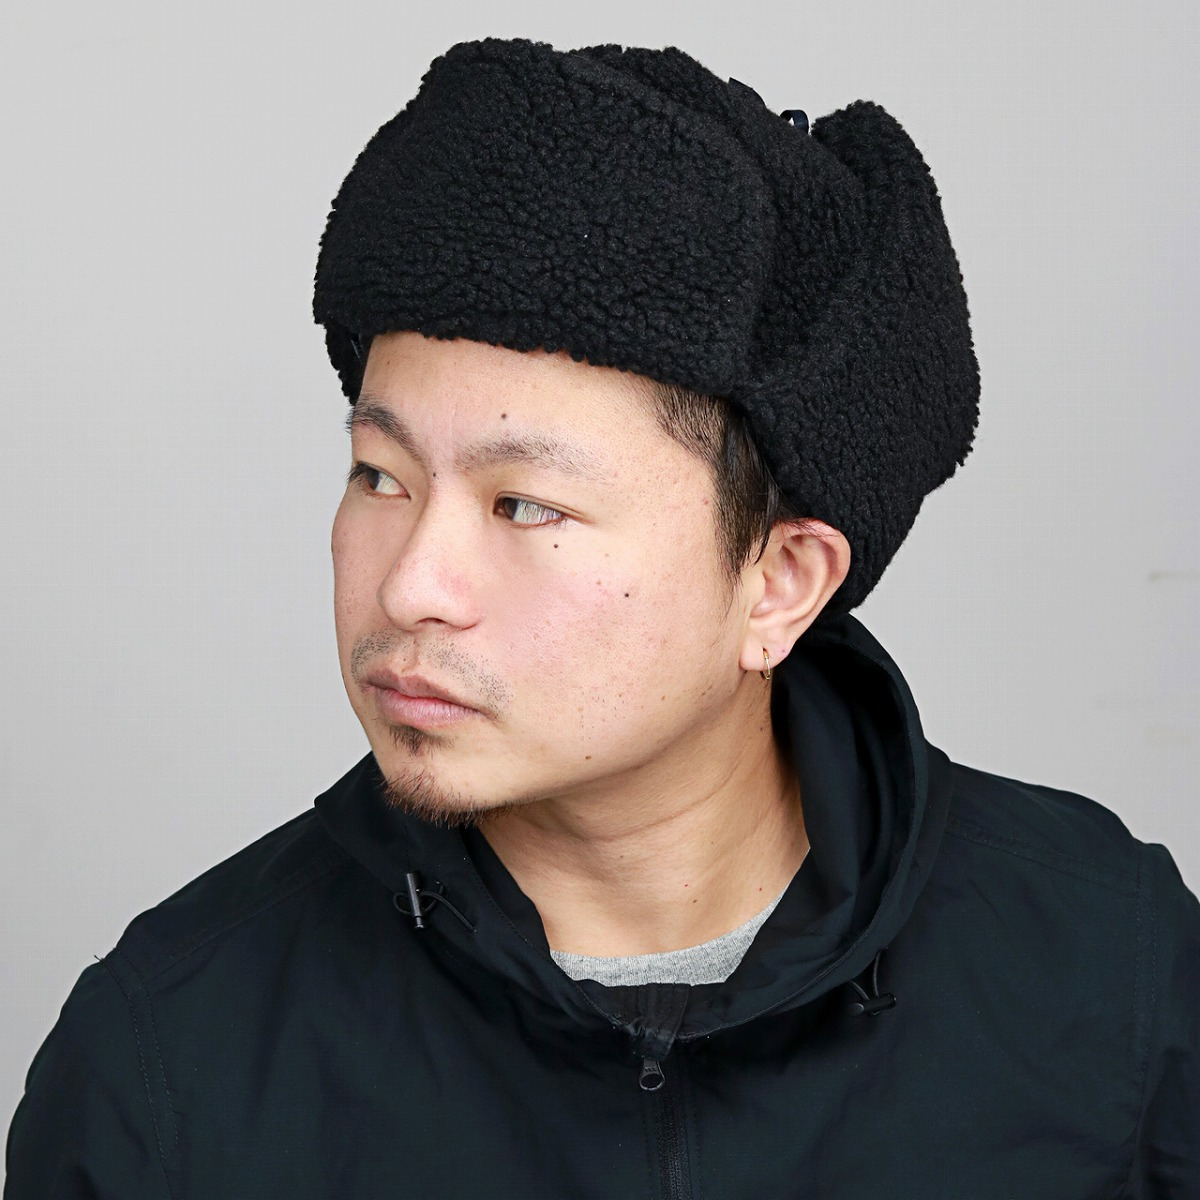 8b28b58871d ELEHELM HAT STORE  Black black  flying cap  present man woman hat mail  order ELEHELM which an ear with the lining exposes a hat cold protection  pilot cap ...